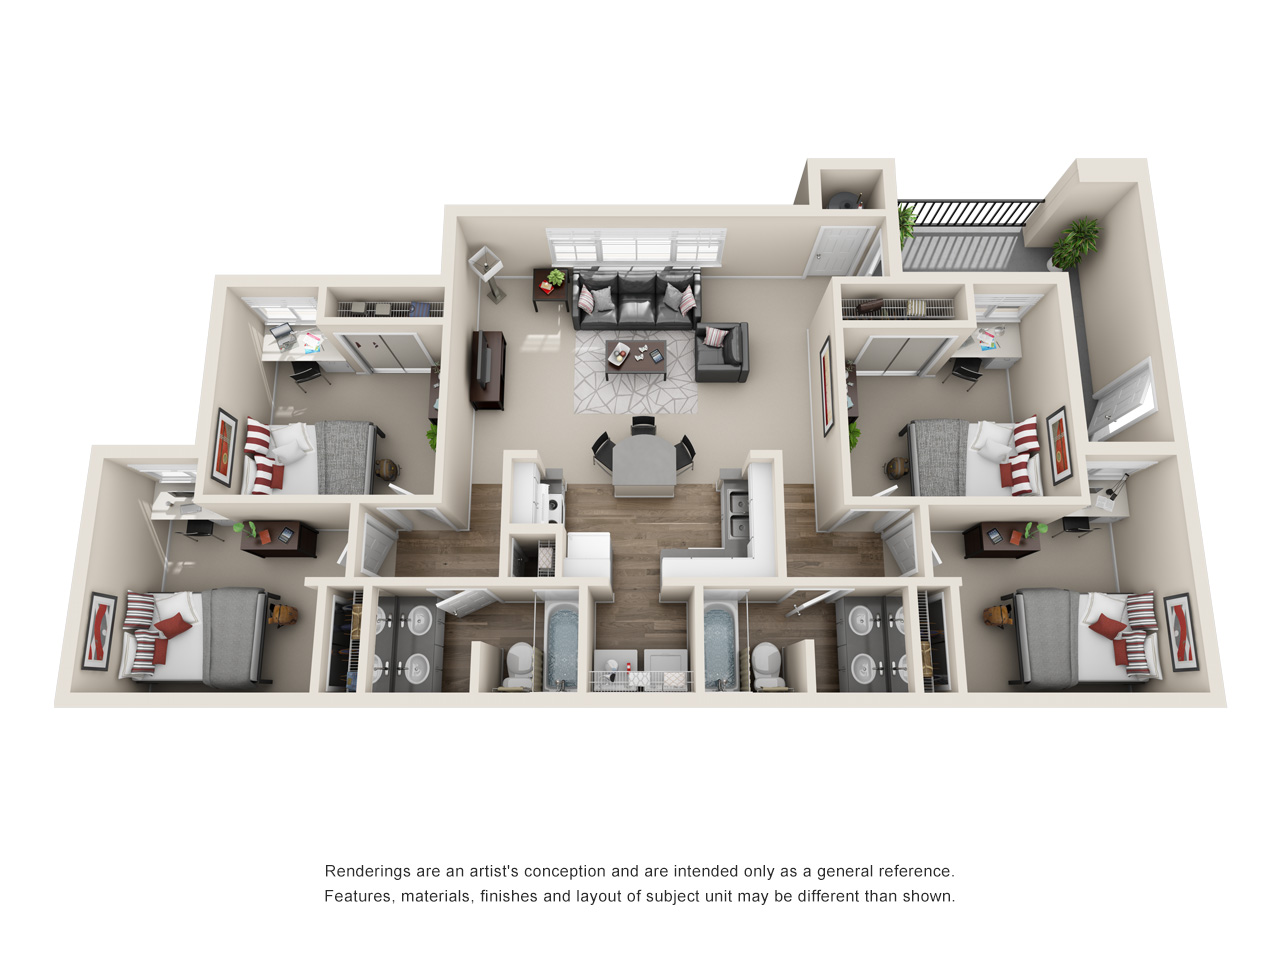 Floor plan of a four-bedroom apartment